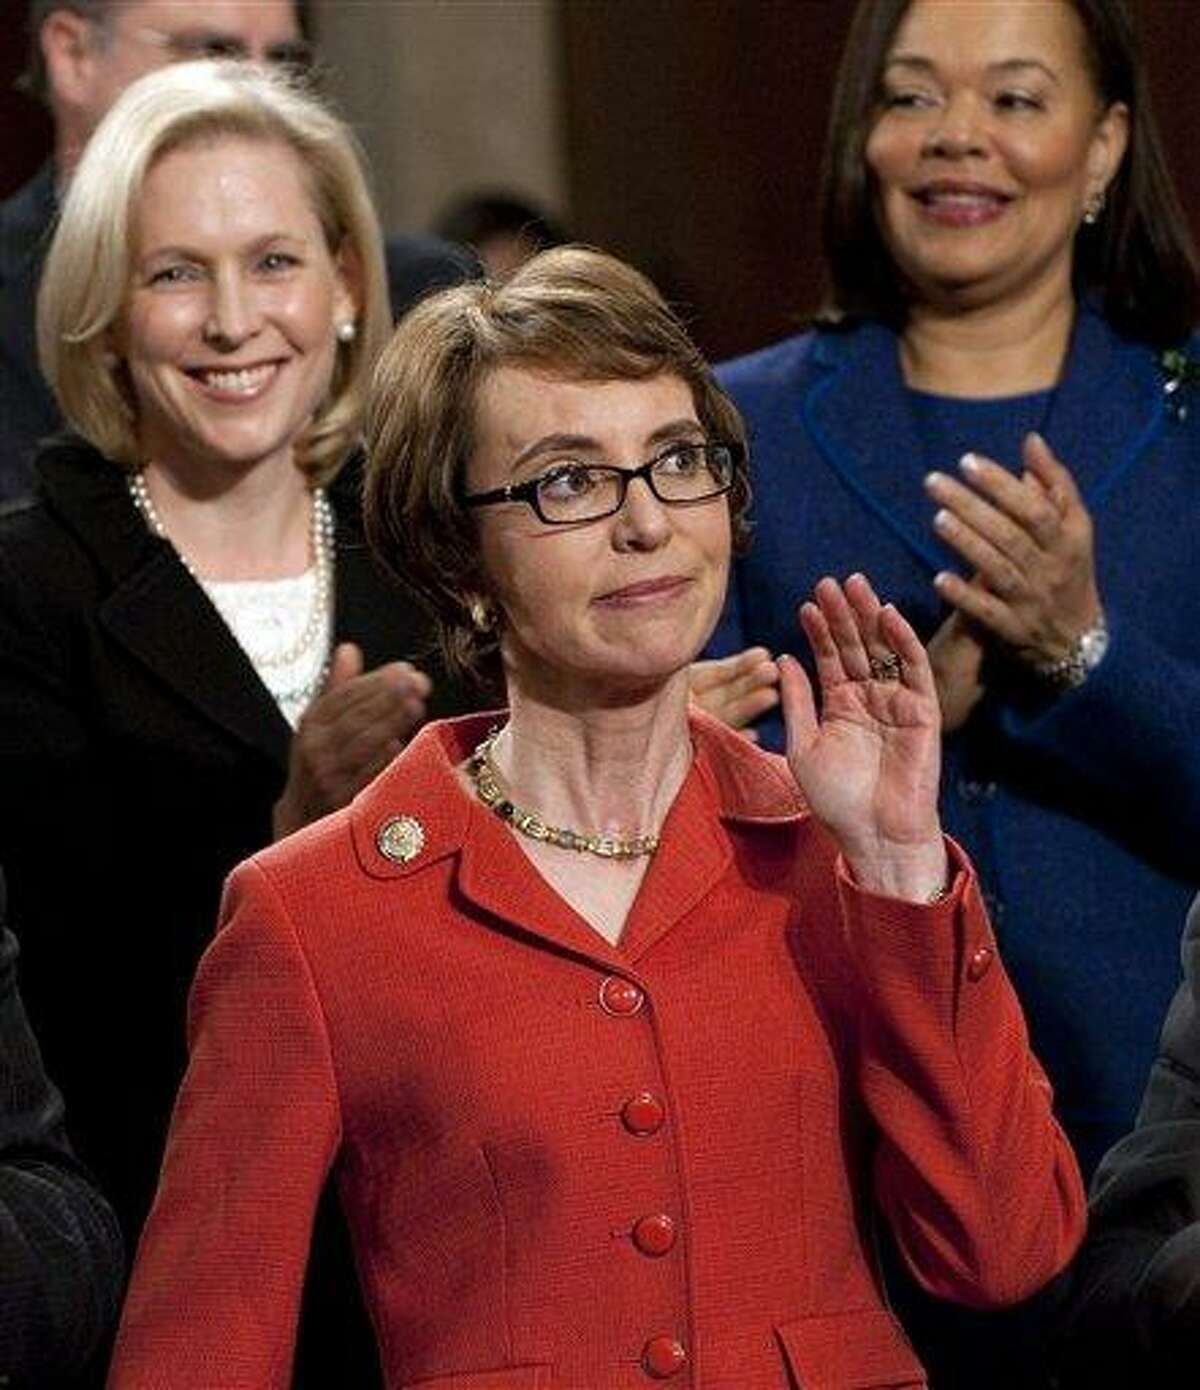 Rep. Gabrielle Giffords, D-Ariz., arrives as members of Congress applaud before President Barack Obama's State of the Union address in front of a joint session of Congress Tuesday at the Capitol in Washington. Associated Press